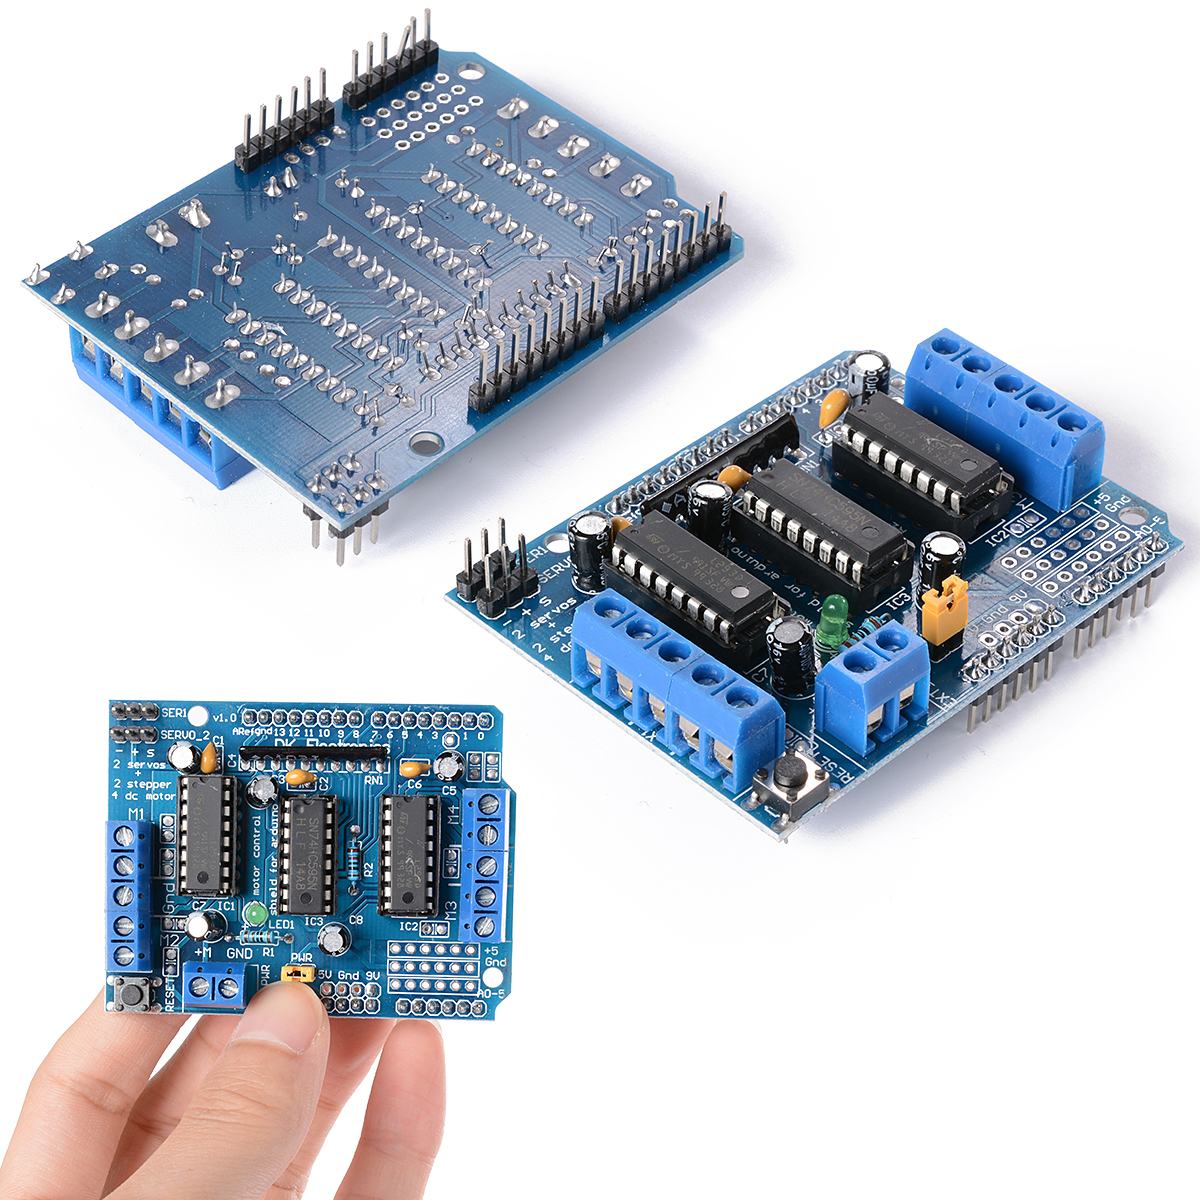 1X Motor Drive Expansion Shield Board Module L293D for Arduino Duemilanove Mega UNO TE216(China (Mainland))